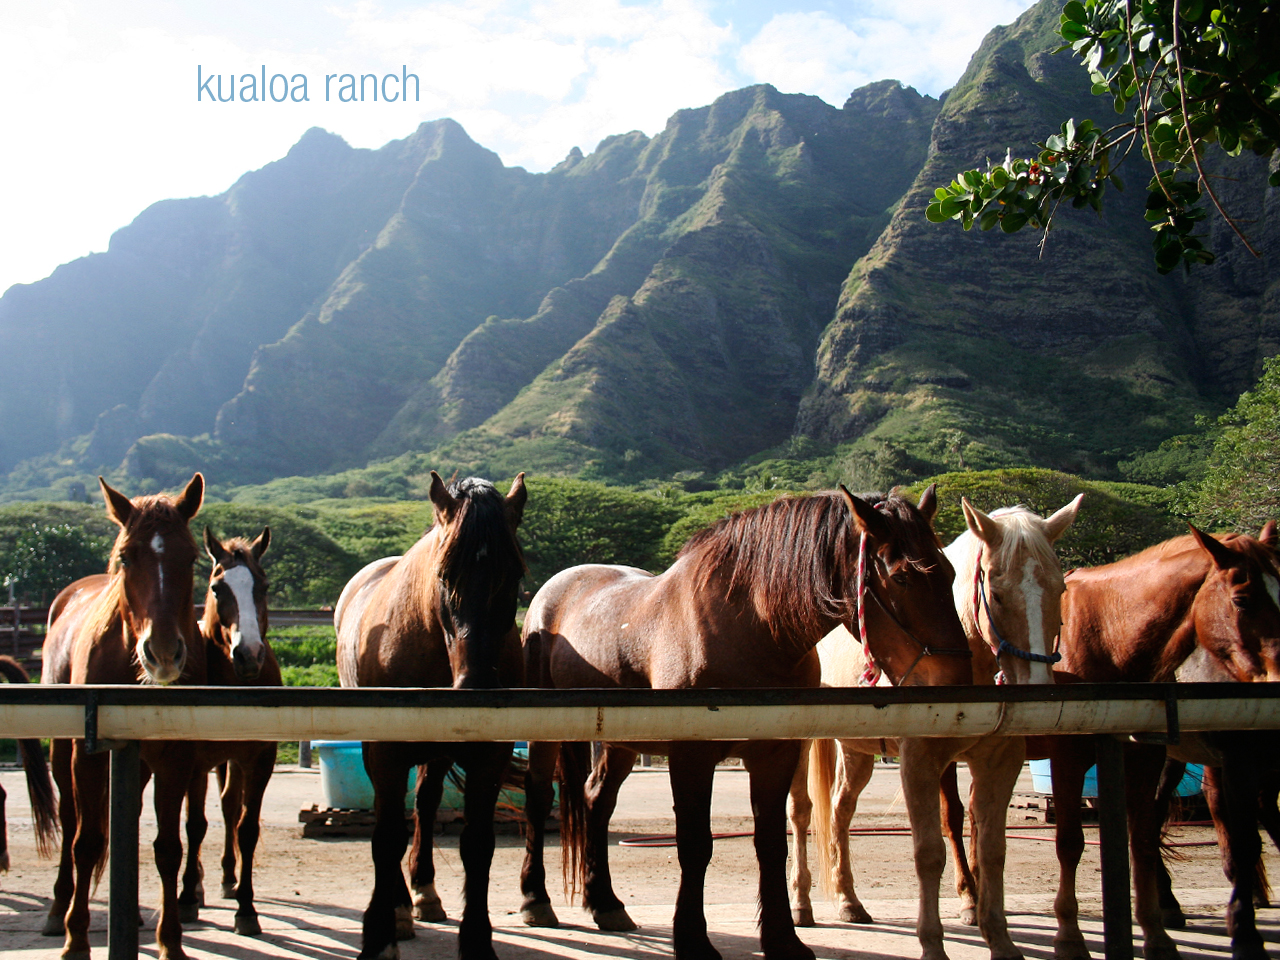 After a few more stops, one at a temple and one at a local macadamia nut farm (best coffee!) we took a quick stop at Kualoa Ranch- abeautiful ranch tucked right next to the mountains along the North Shore where you can take horseback or four-wheeler tours throughout some famous filming grounds (cough Jurrasic Park, cough Lost).